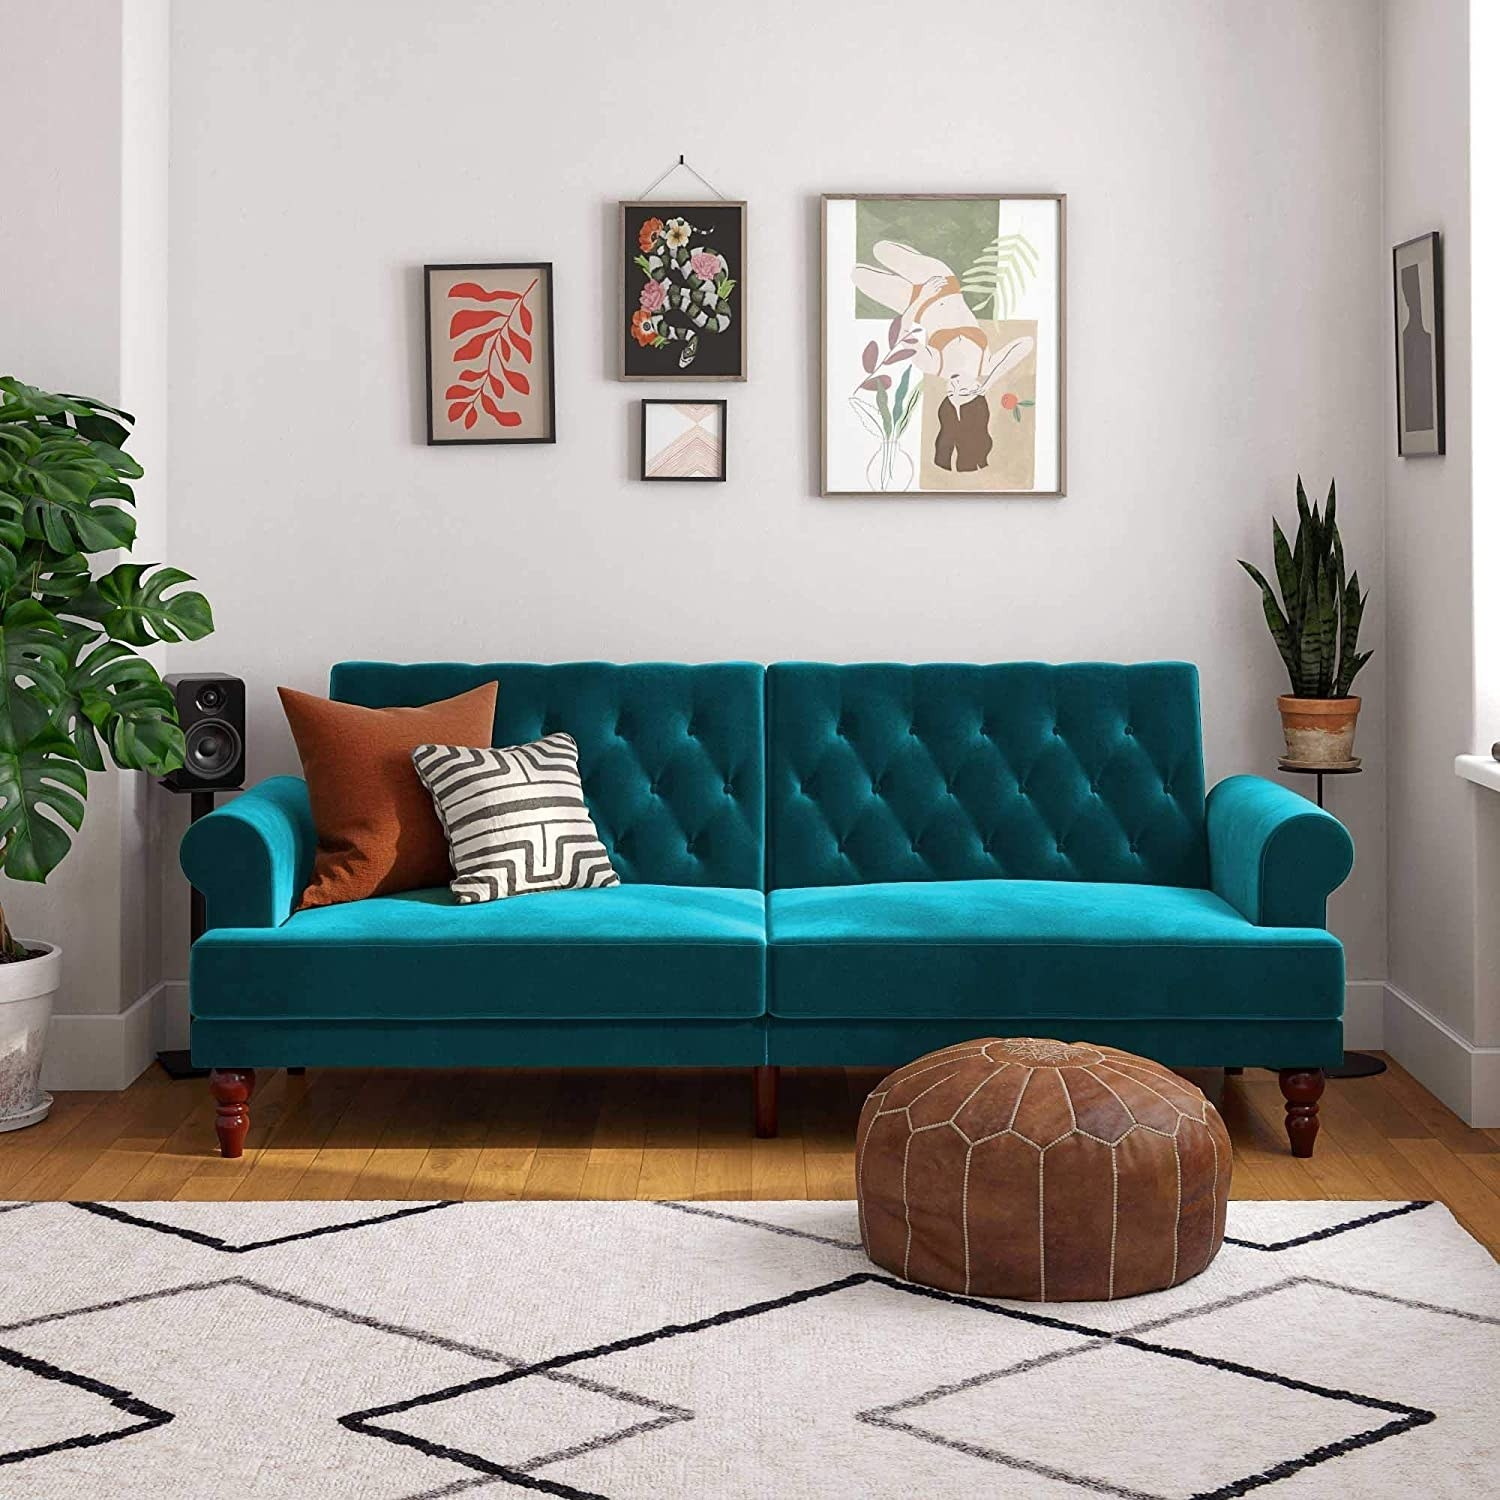 The teal velvet couch